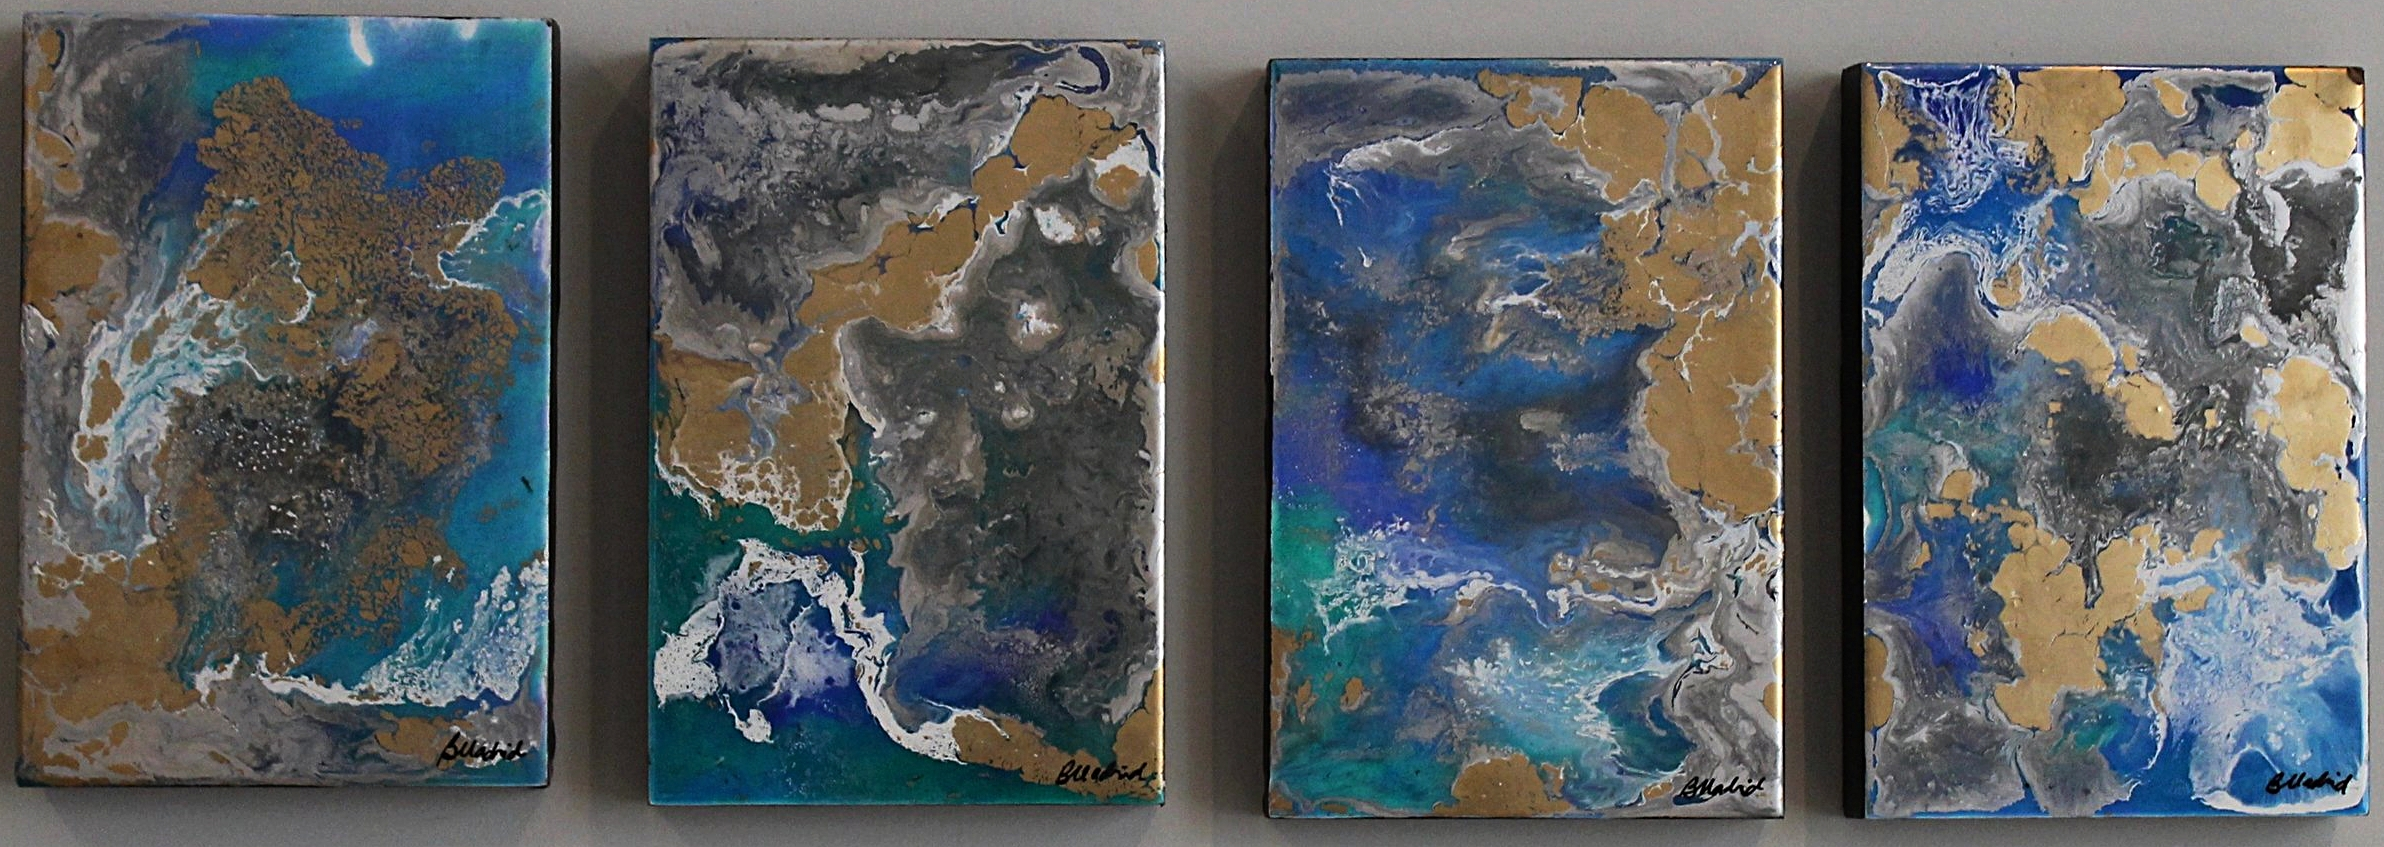 "View from Space | set of 3 11"" x 7.5"" on wooden canvas"